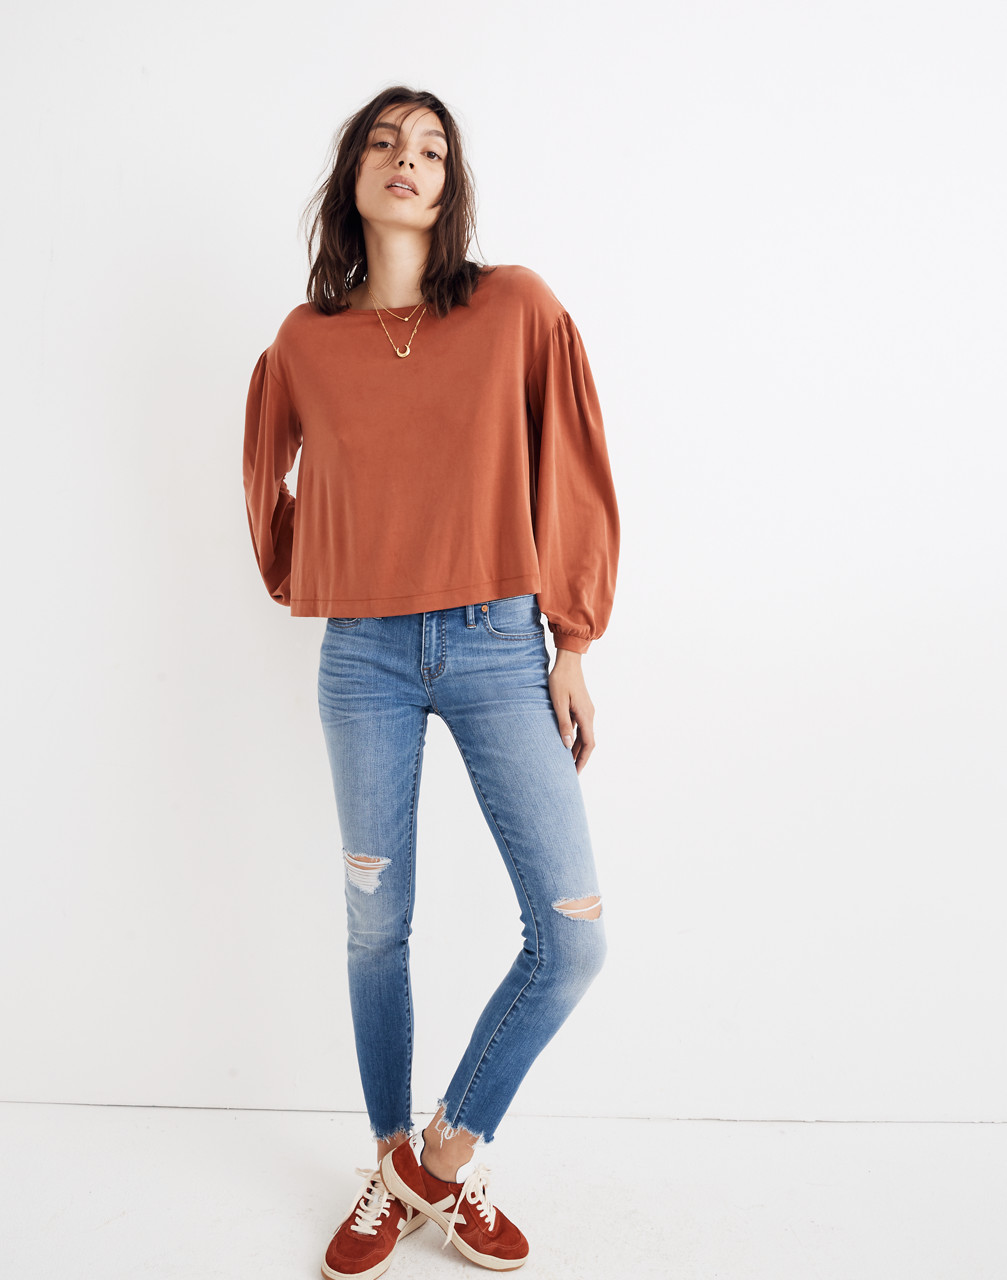 Sandwashed Gathered-Sleeve Top in rusty torch image 2